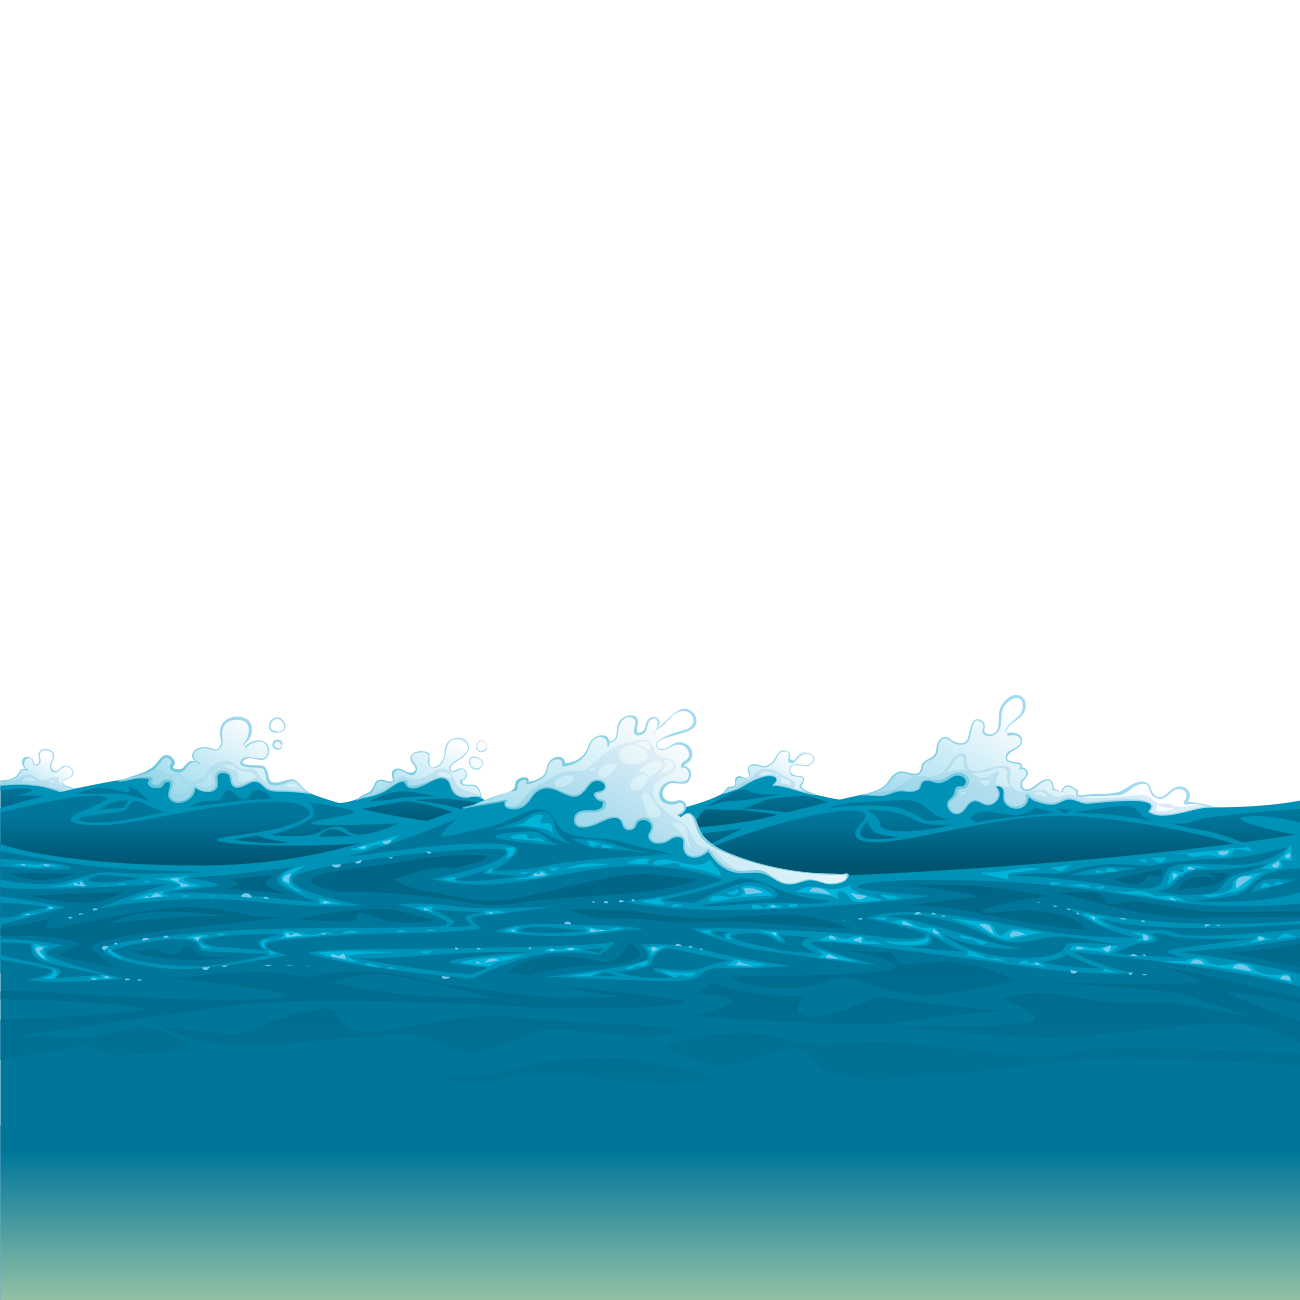 Ocean level water resources. Clipart waves stormy sea